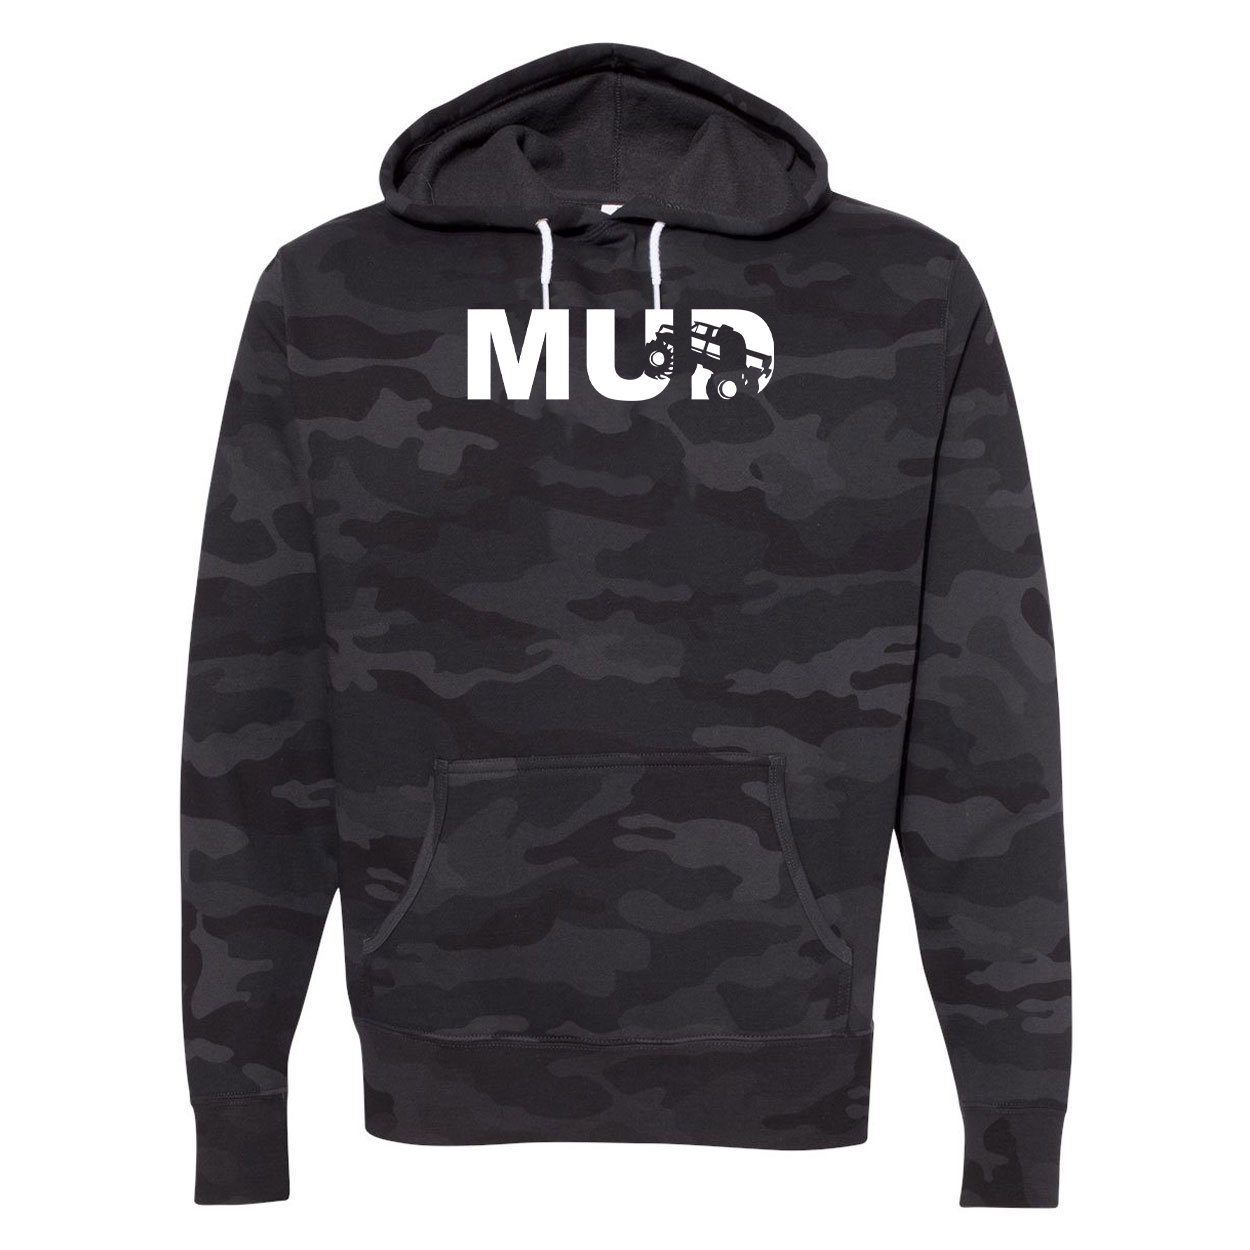 Mud Truck Logo Classic Unisex Hooded Sweatshirt Black Camo (White Logo)